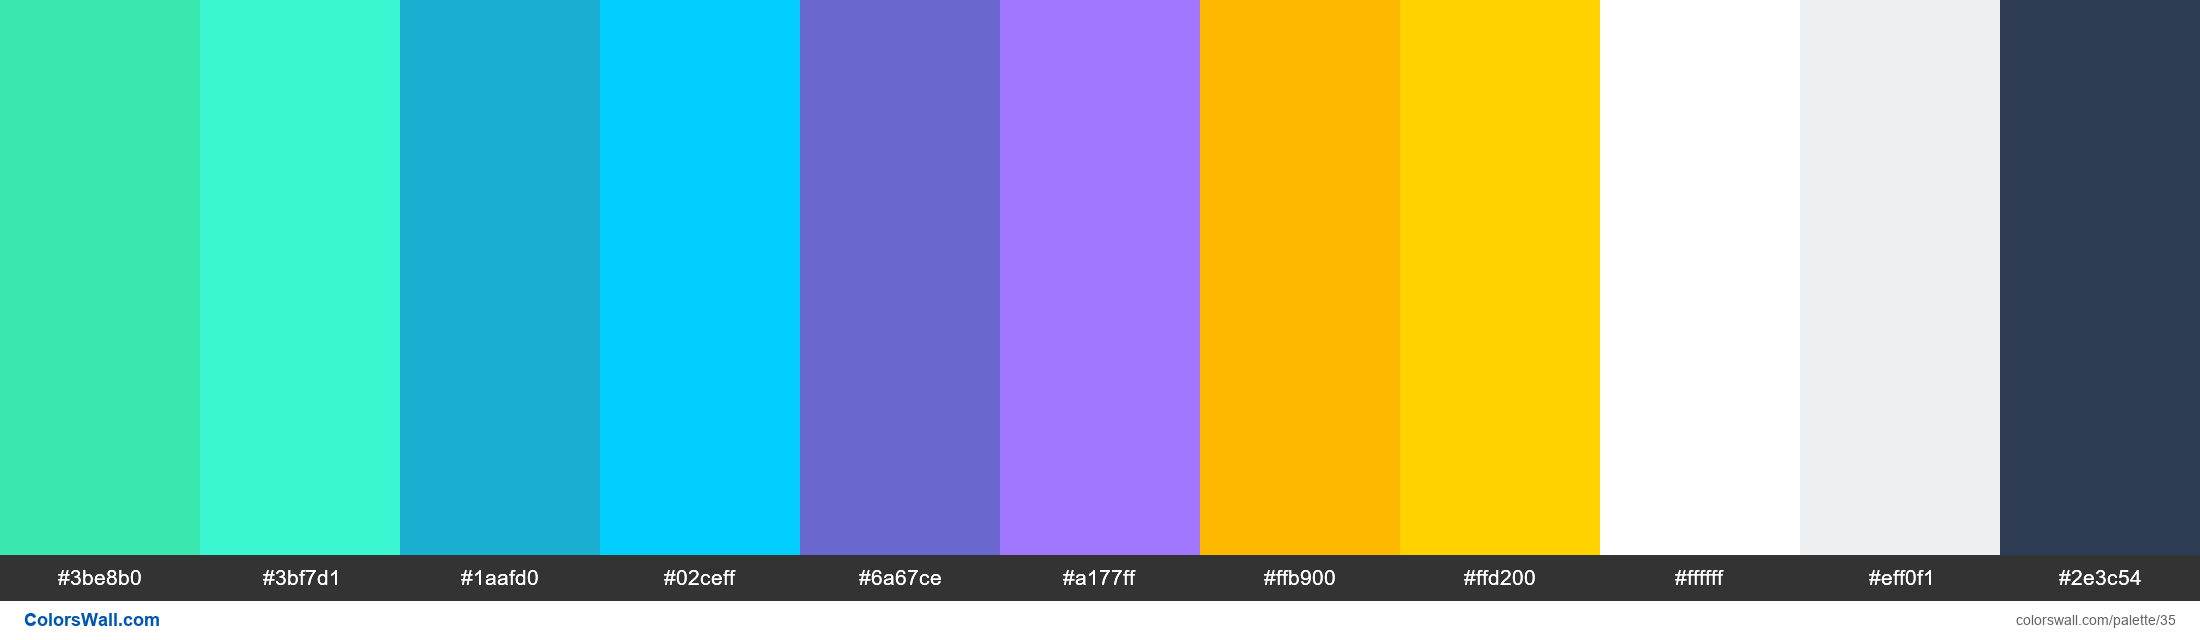 Asana colors palette - #35